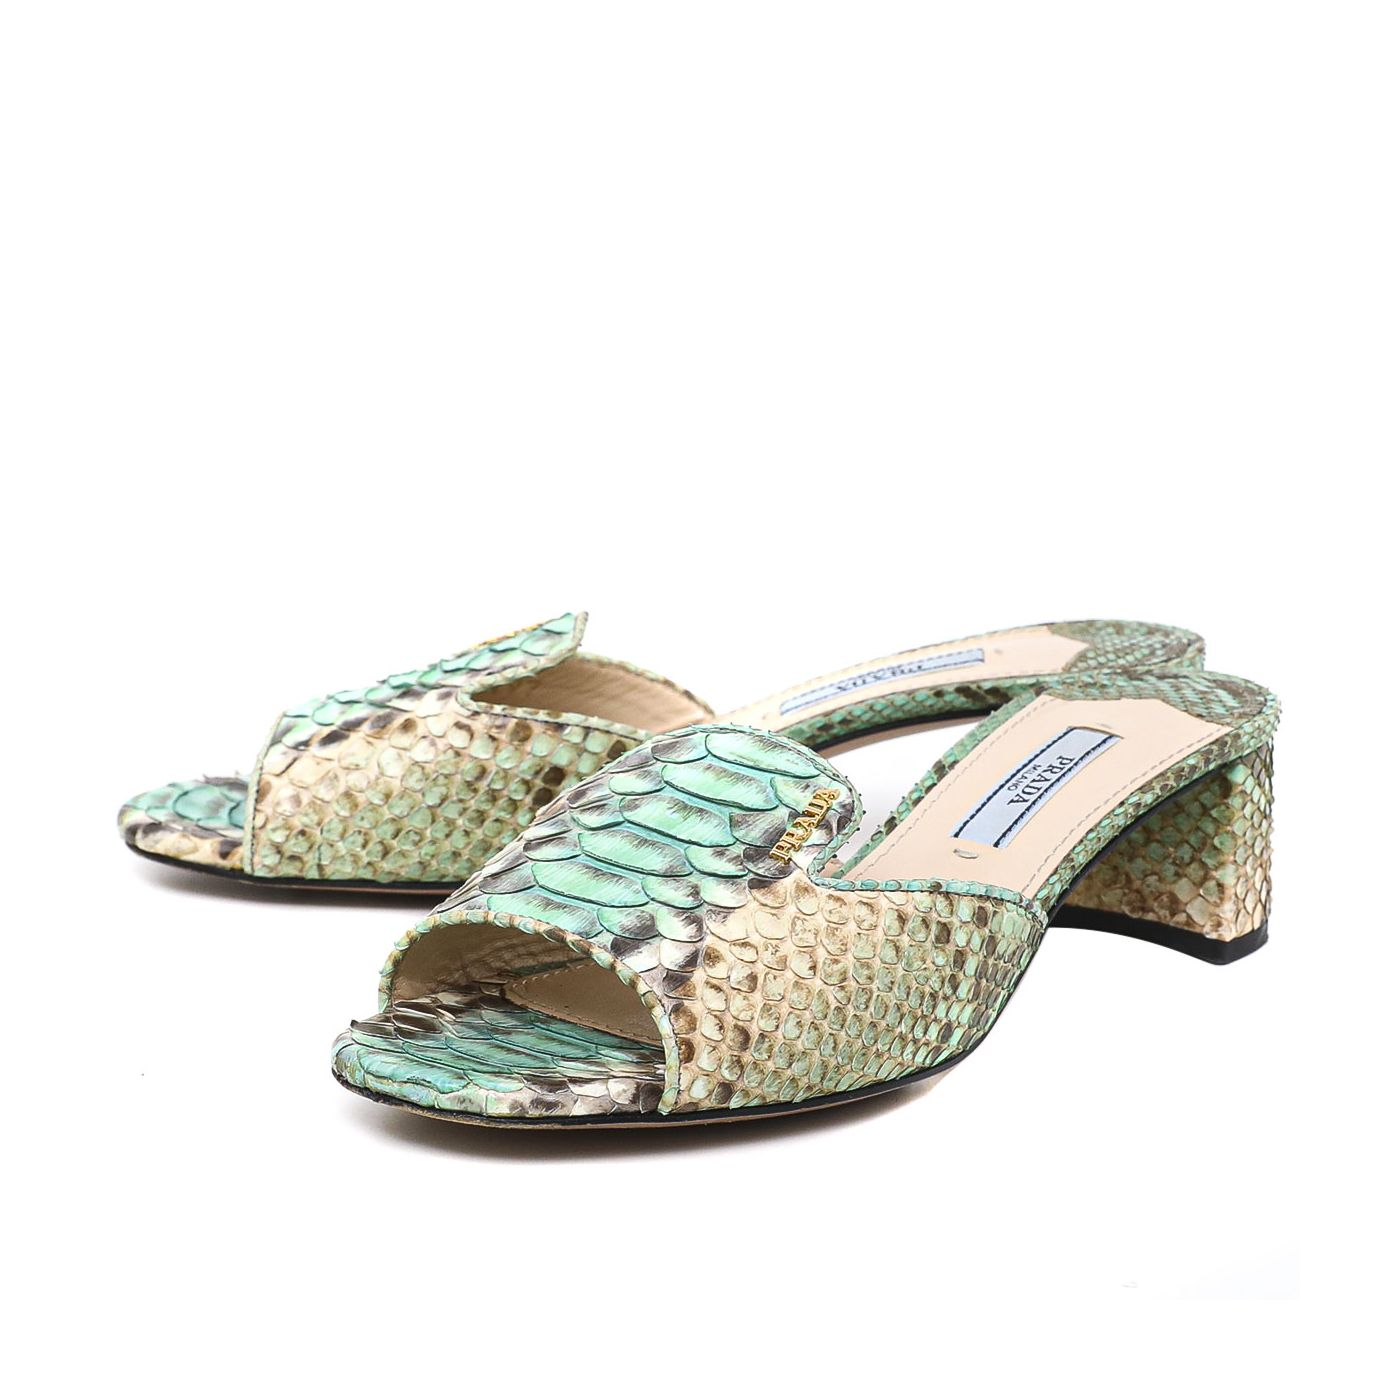 Prada Python Slide Block Sandals 35.5